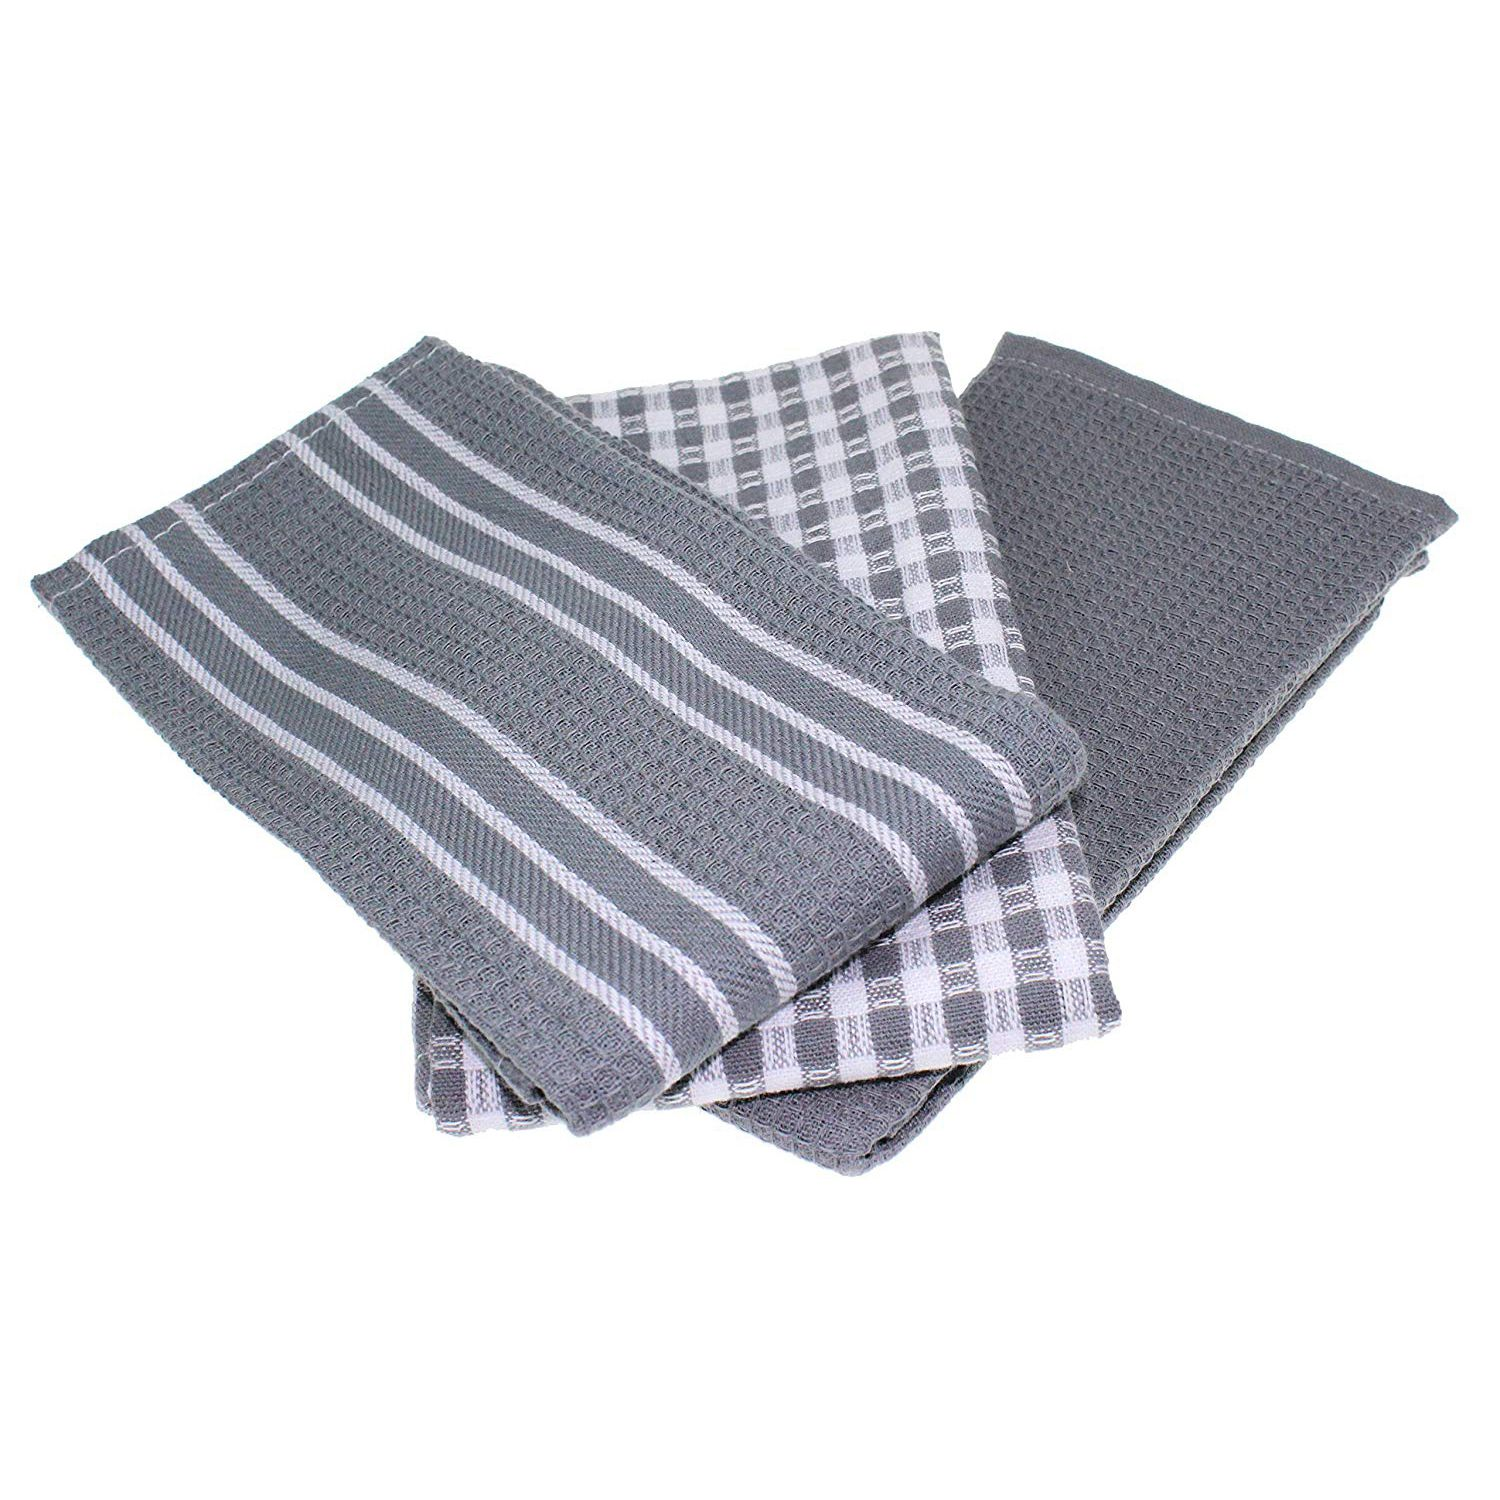 US $6.57 8% OFF|Classic Kitchen Towels, 100% Natural Cotton, The Best Tea  Towels, Dish Cloth, Absorbent and Lint Free, Machine Washable, 18 x-in ...